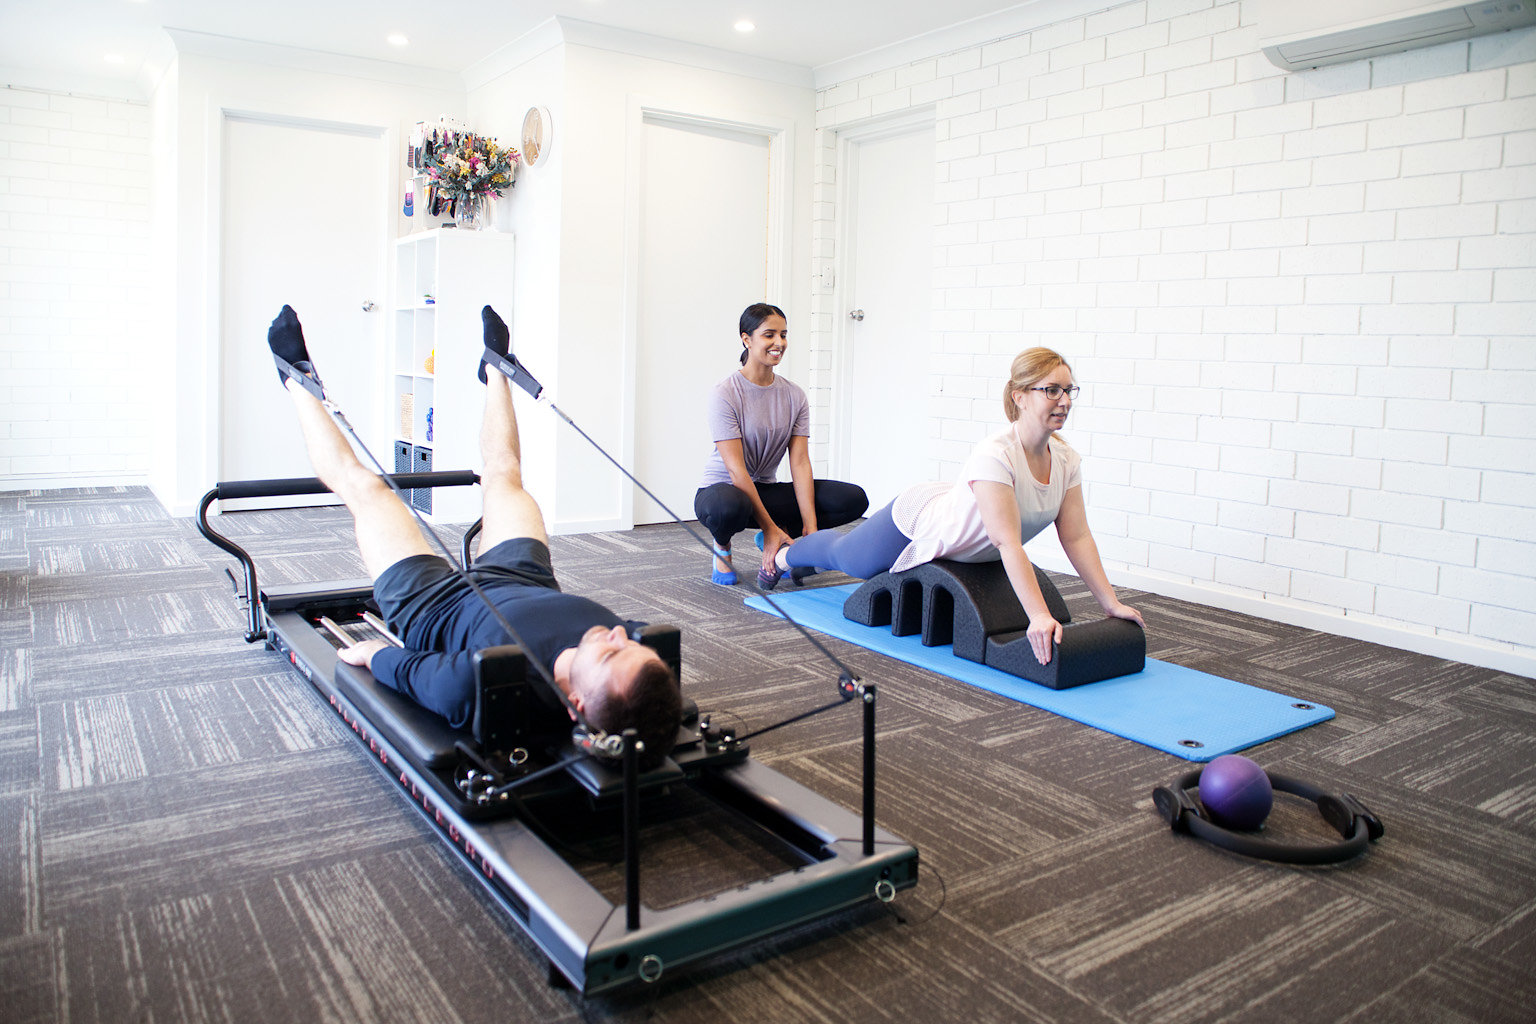 180520_PilatesRoom_LauraVanagsPhotography_Webres_MG_9365